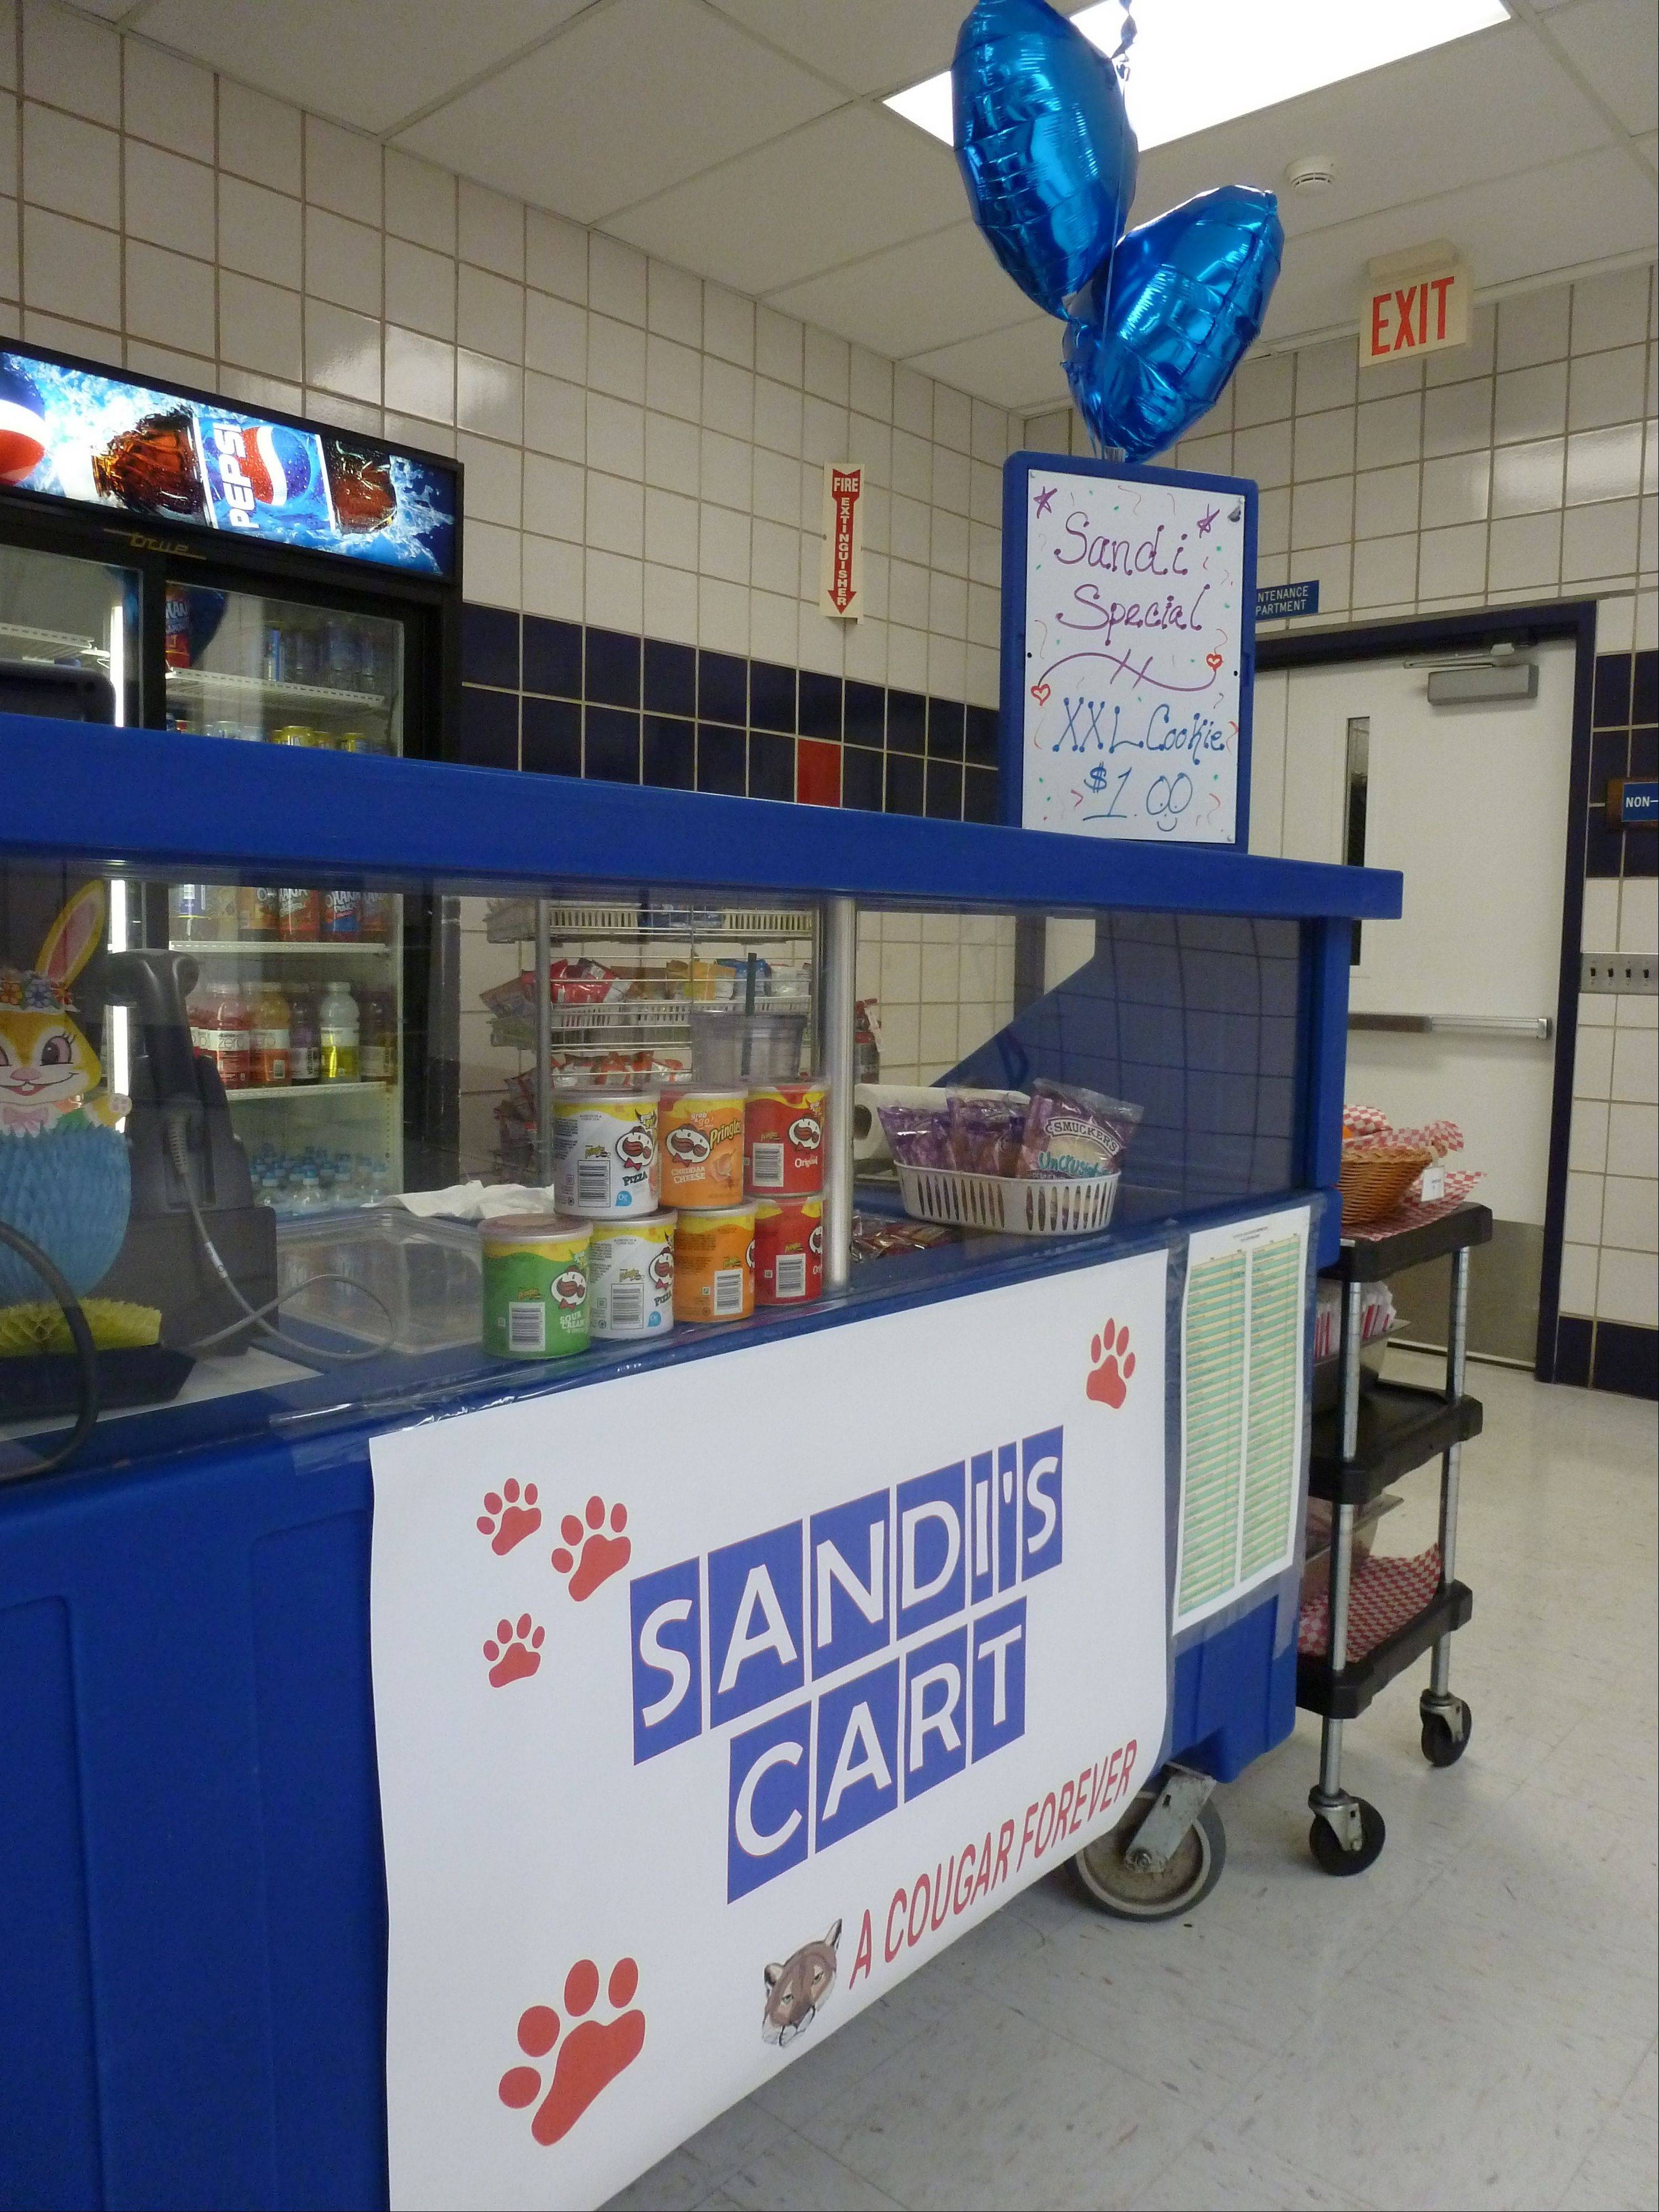 A petition is being circulated at Conant to permanently name the cart for Sandi Smith.